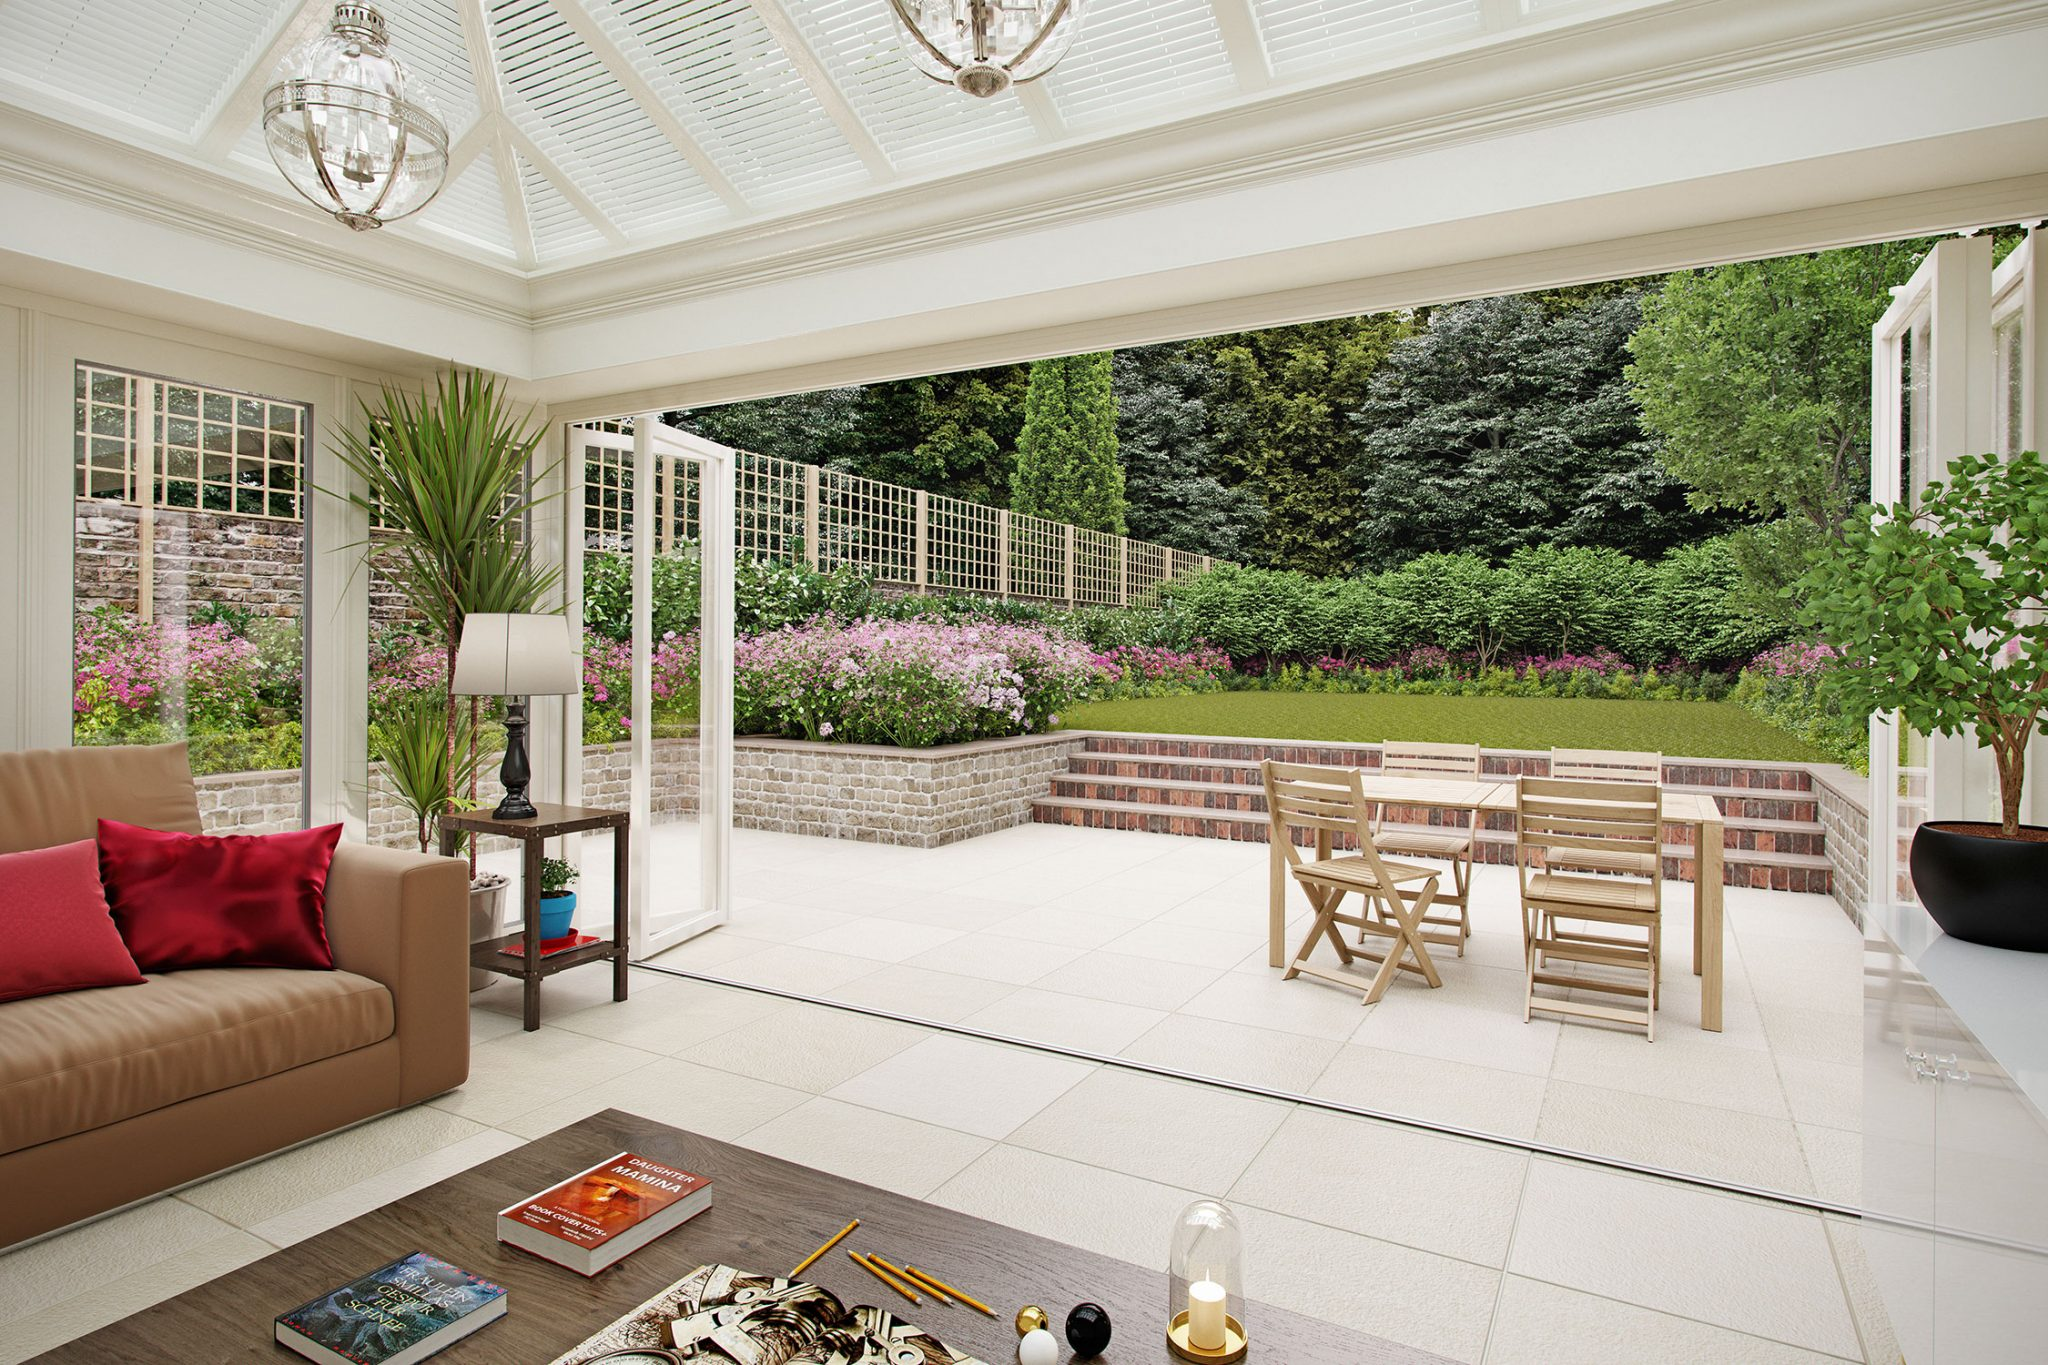 Indoor-outdoor living space using white Valverdi porcelain tiles.